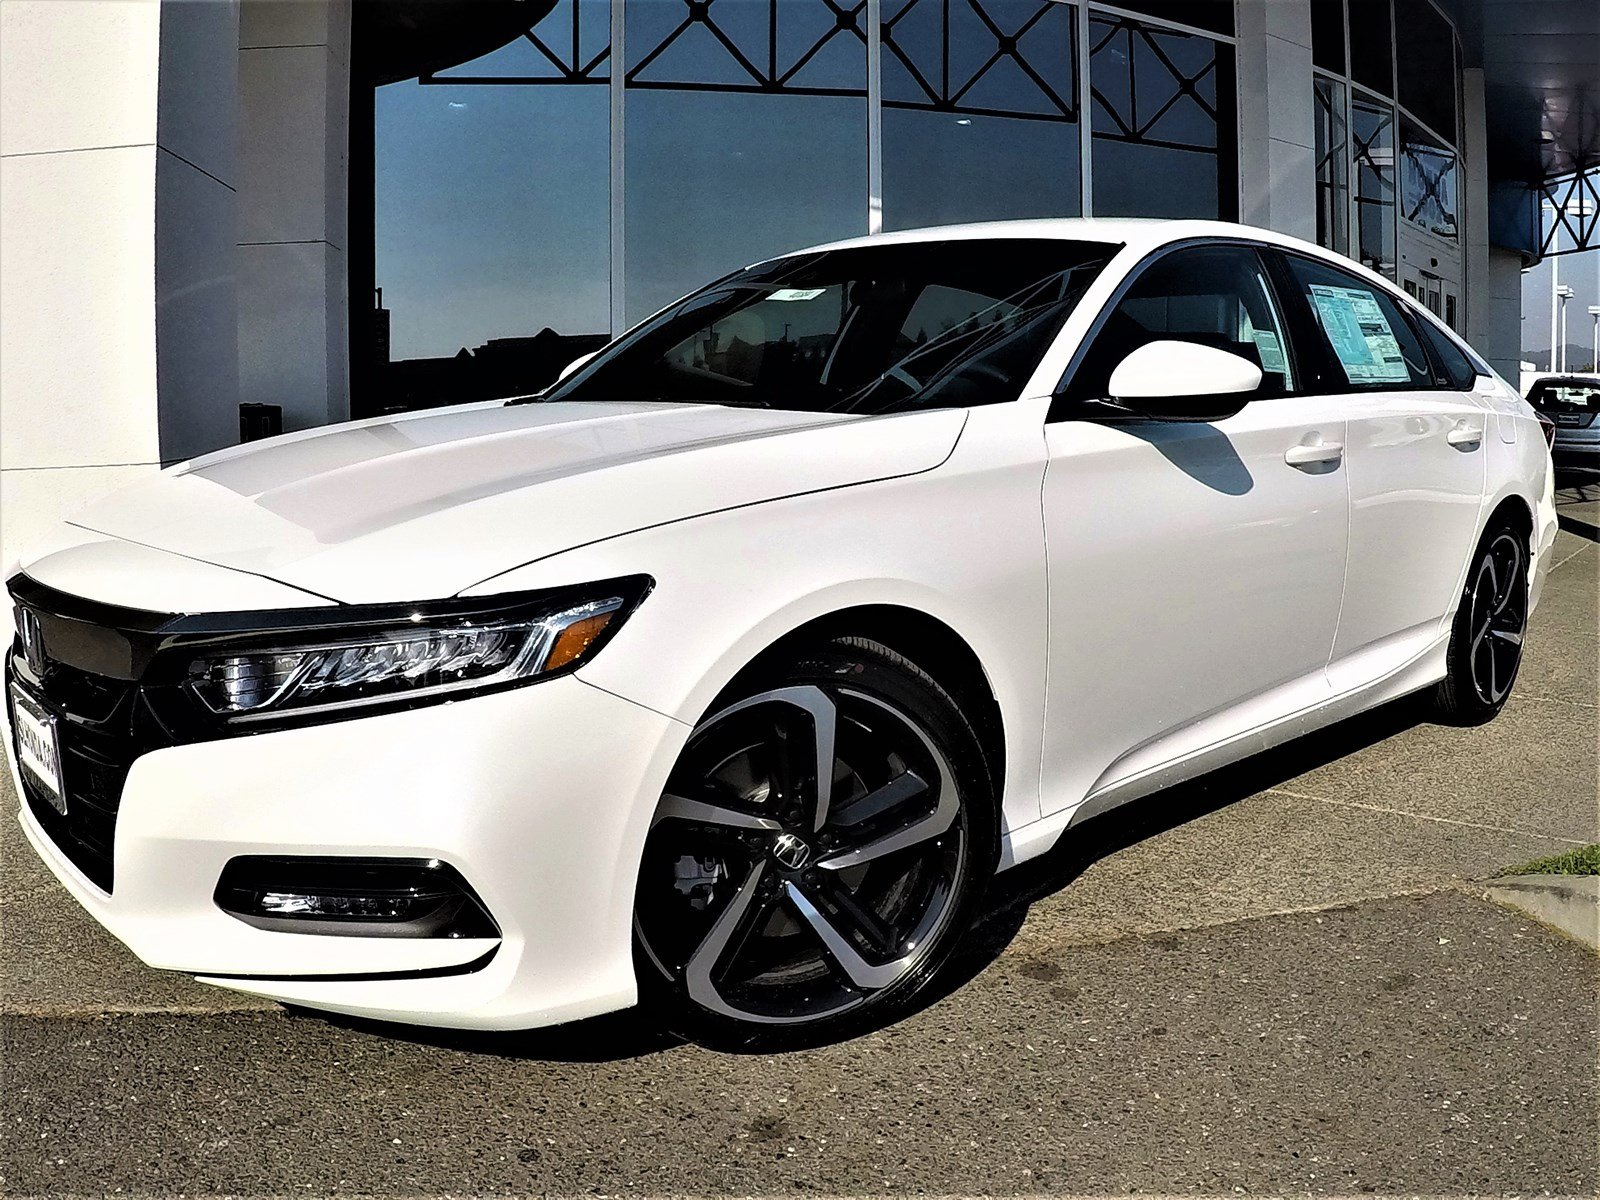 2018 honda accord for sale event in oakland hayward for Honda financial services mailing address